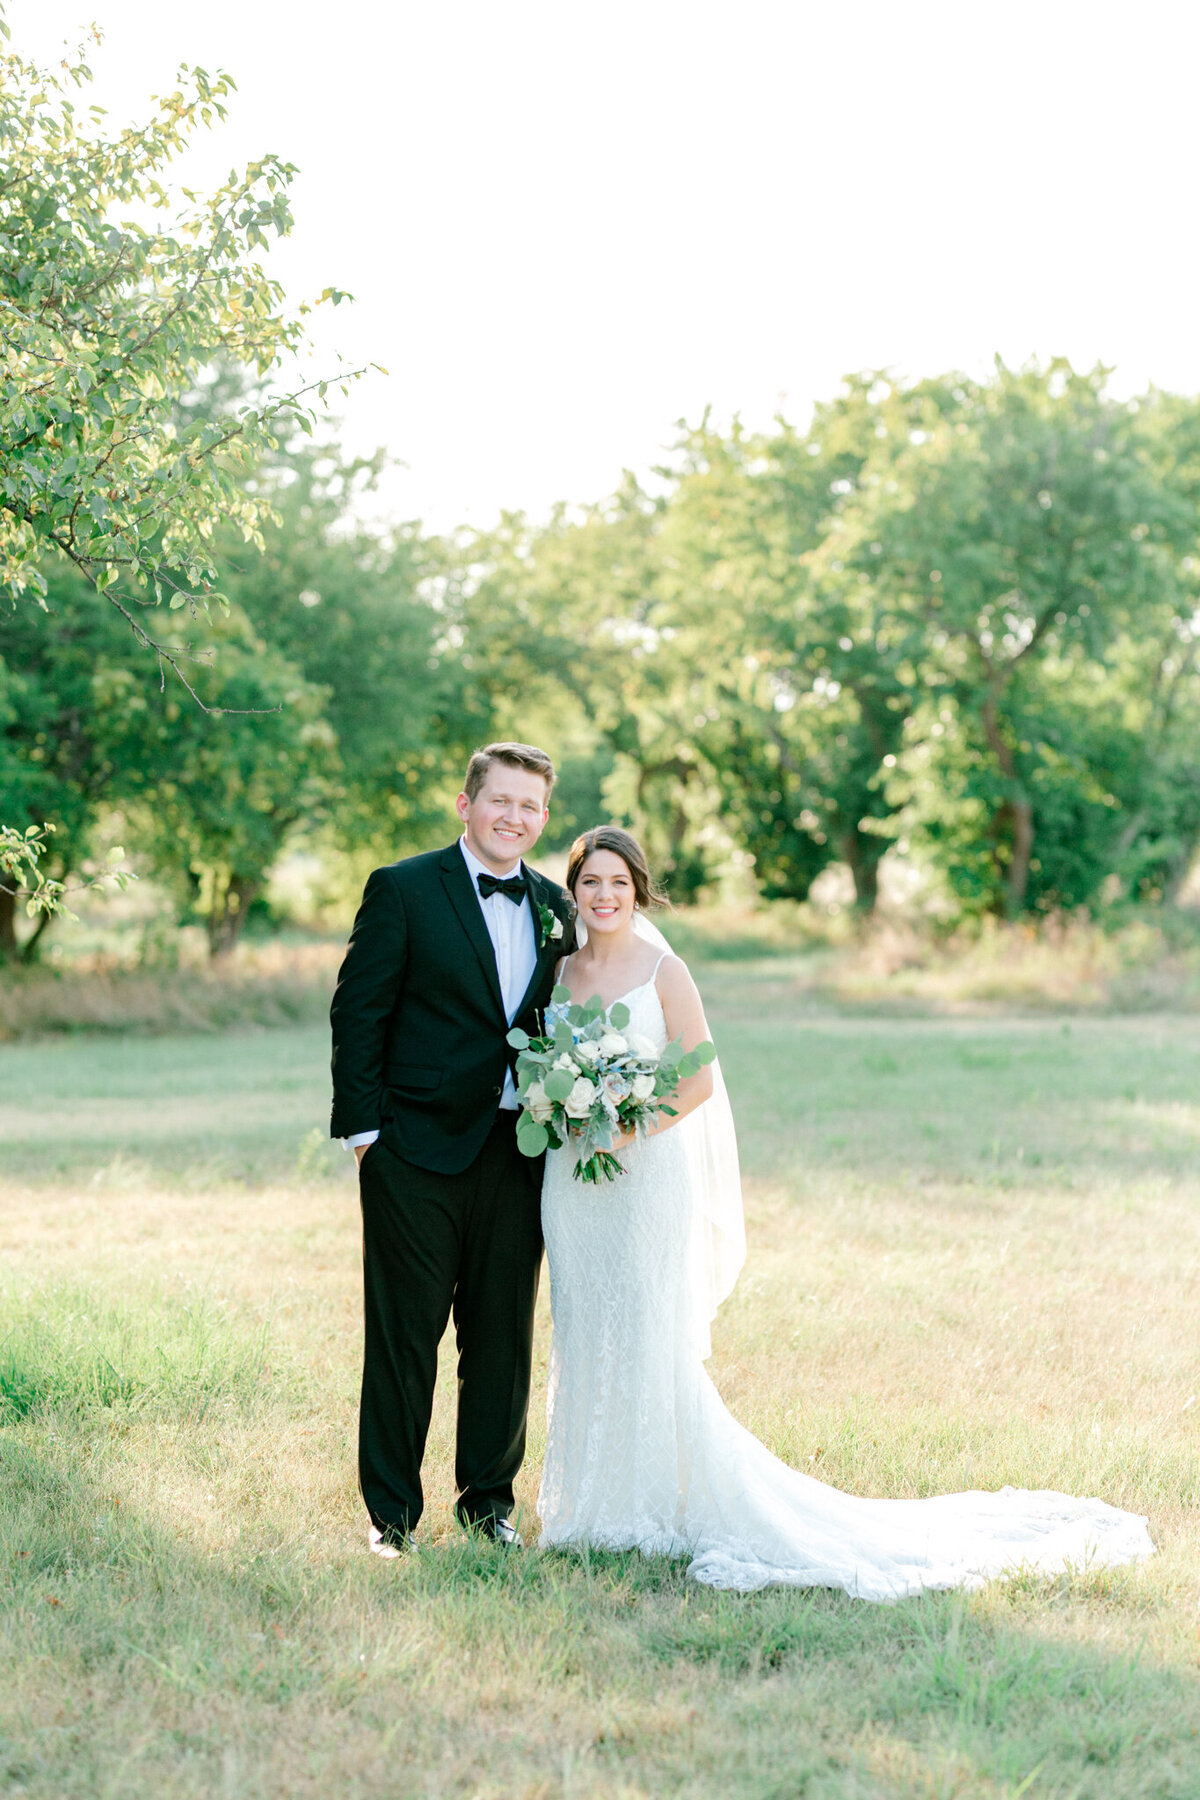 Anna & Billy's Wedding at The Nest at Ruth Farms | Dallas Wedding Photographer | Sami Kathryn Photography-1